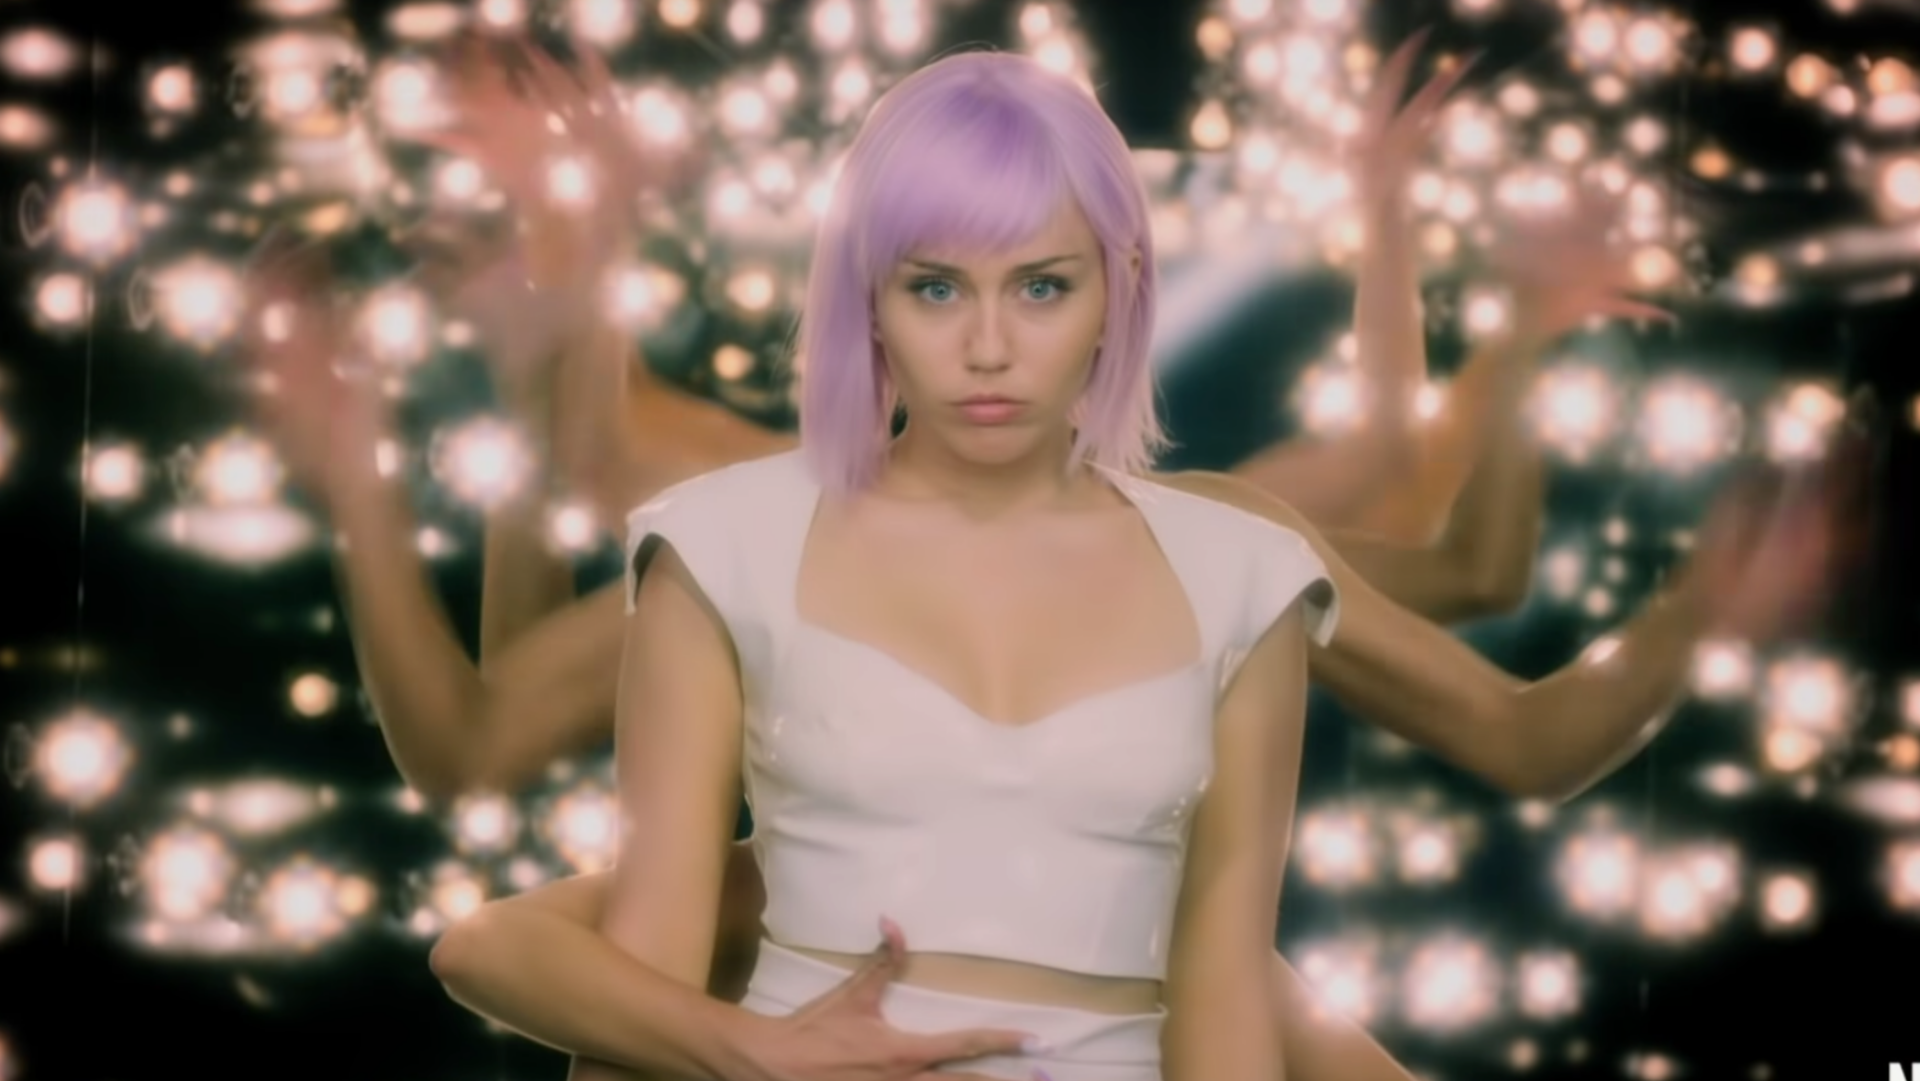 Black Mirror season 5 episode cast Miley Cyrus